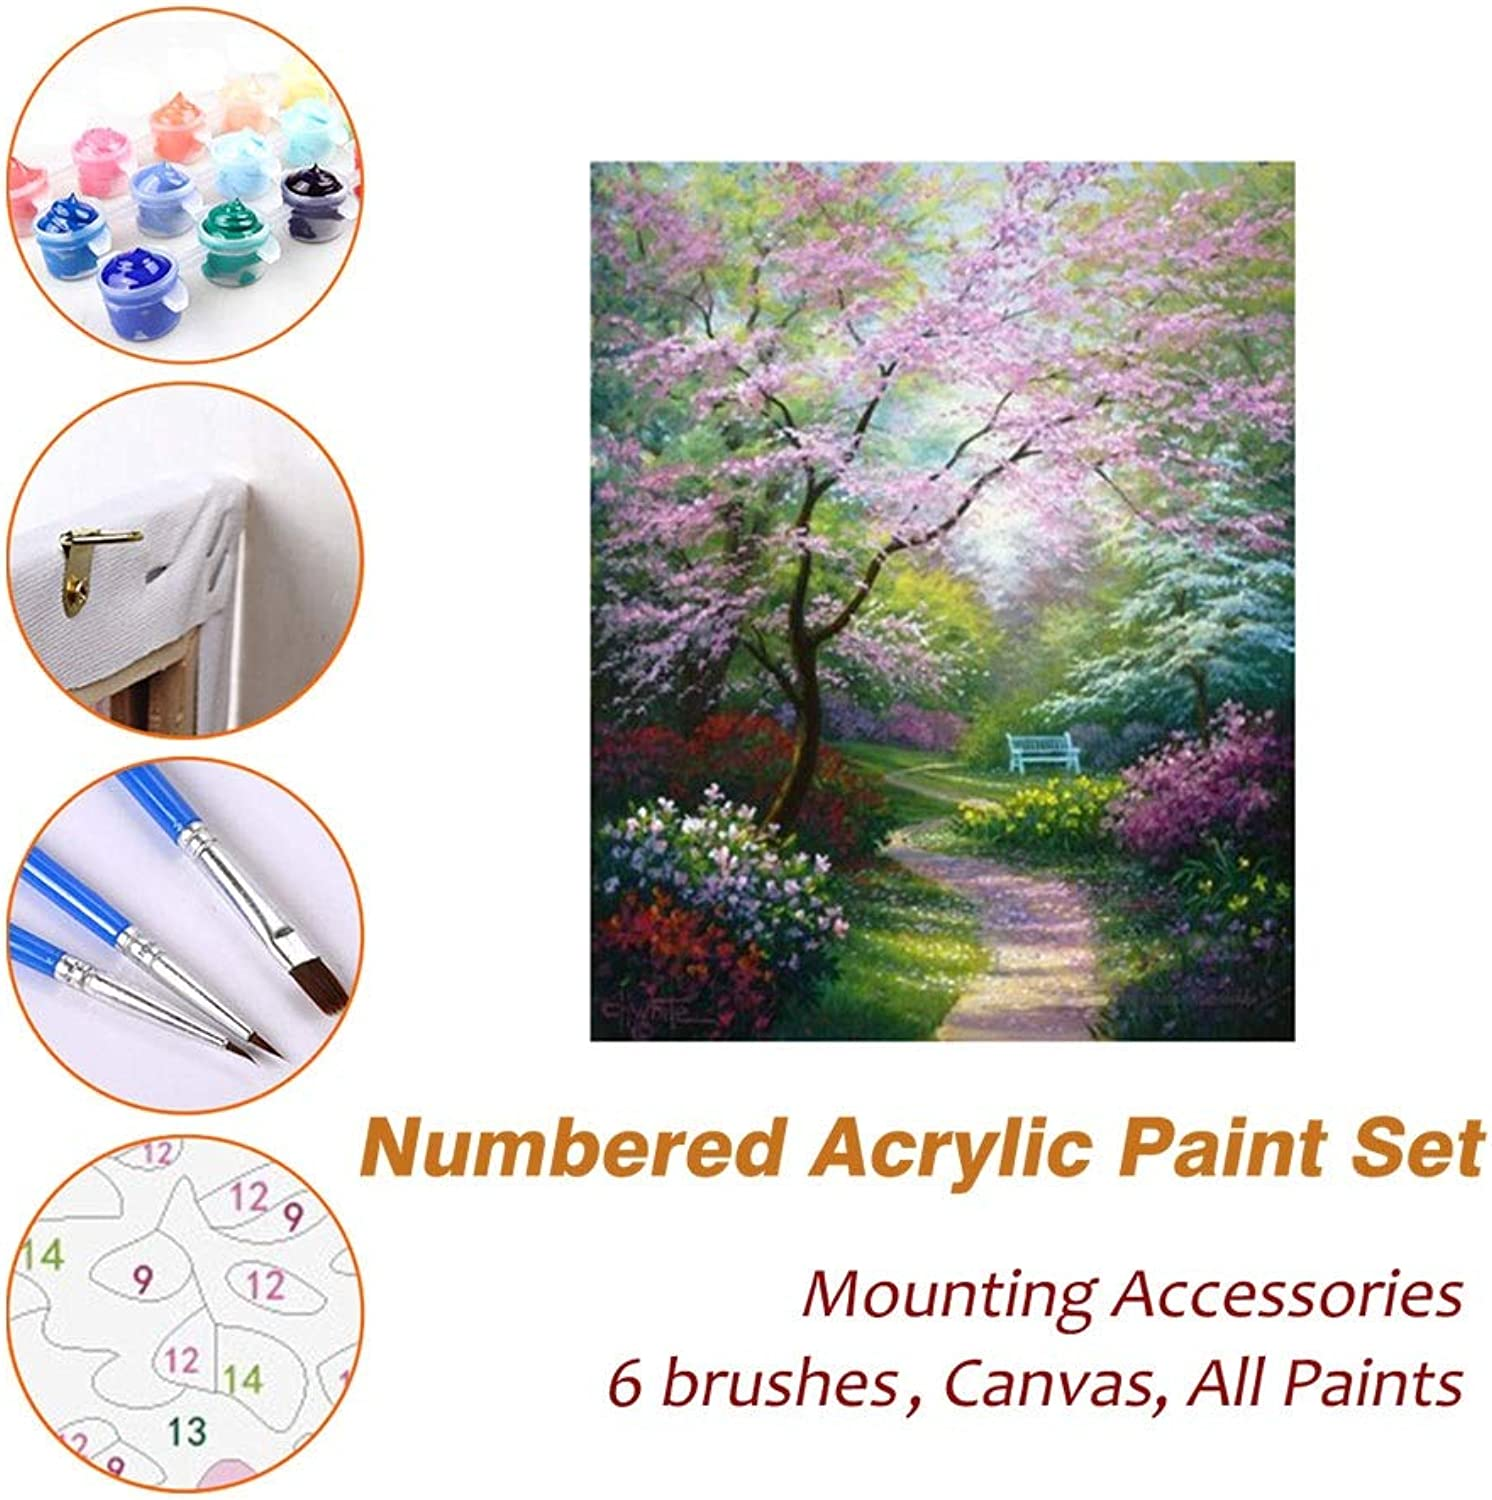 Puzzle House Paint Max Acrylic Oil Painting Paint By Numbers Kits Sets With Frame For Kids Adults Beginner Artist, Quiet Forest Path DIY Wall Art Picture Photography Brush Supplies 601